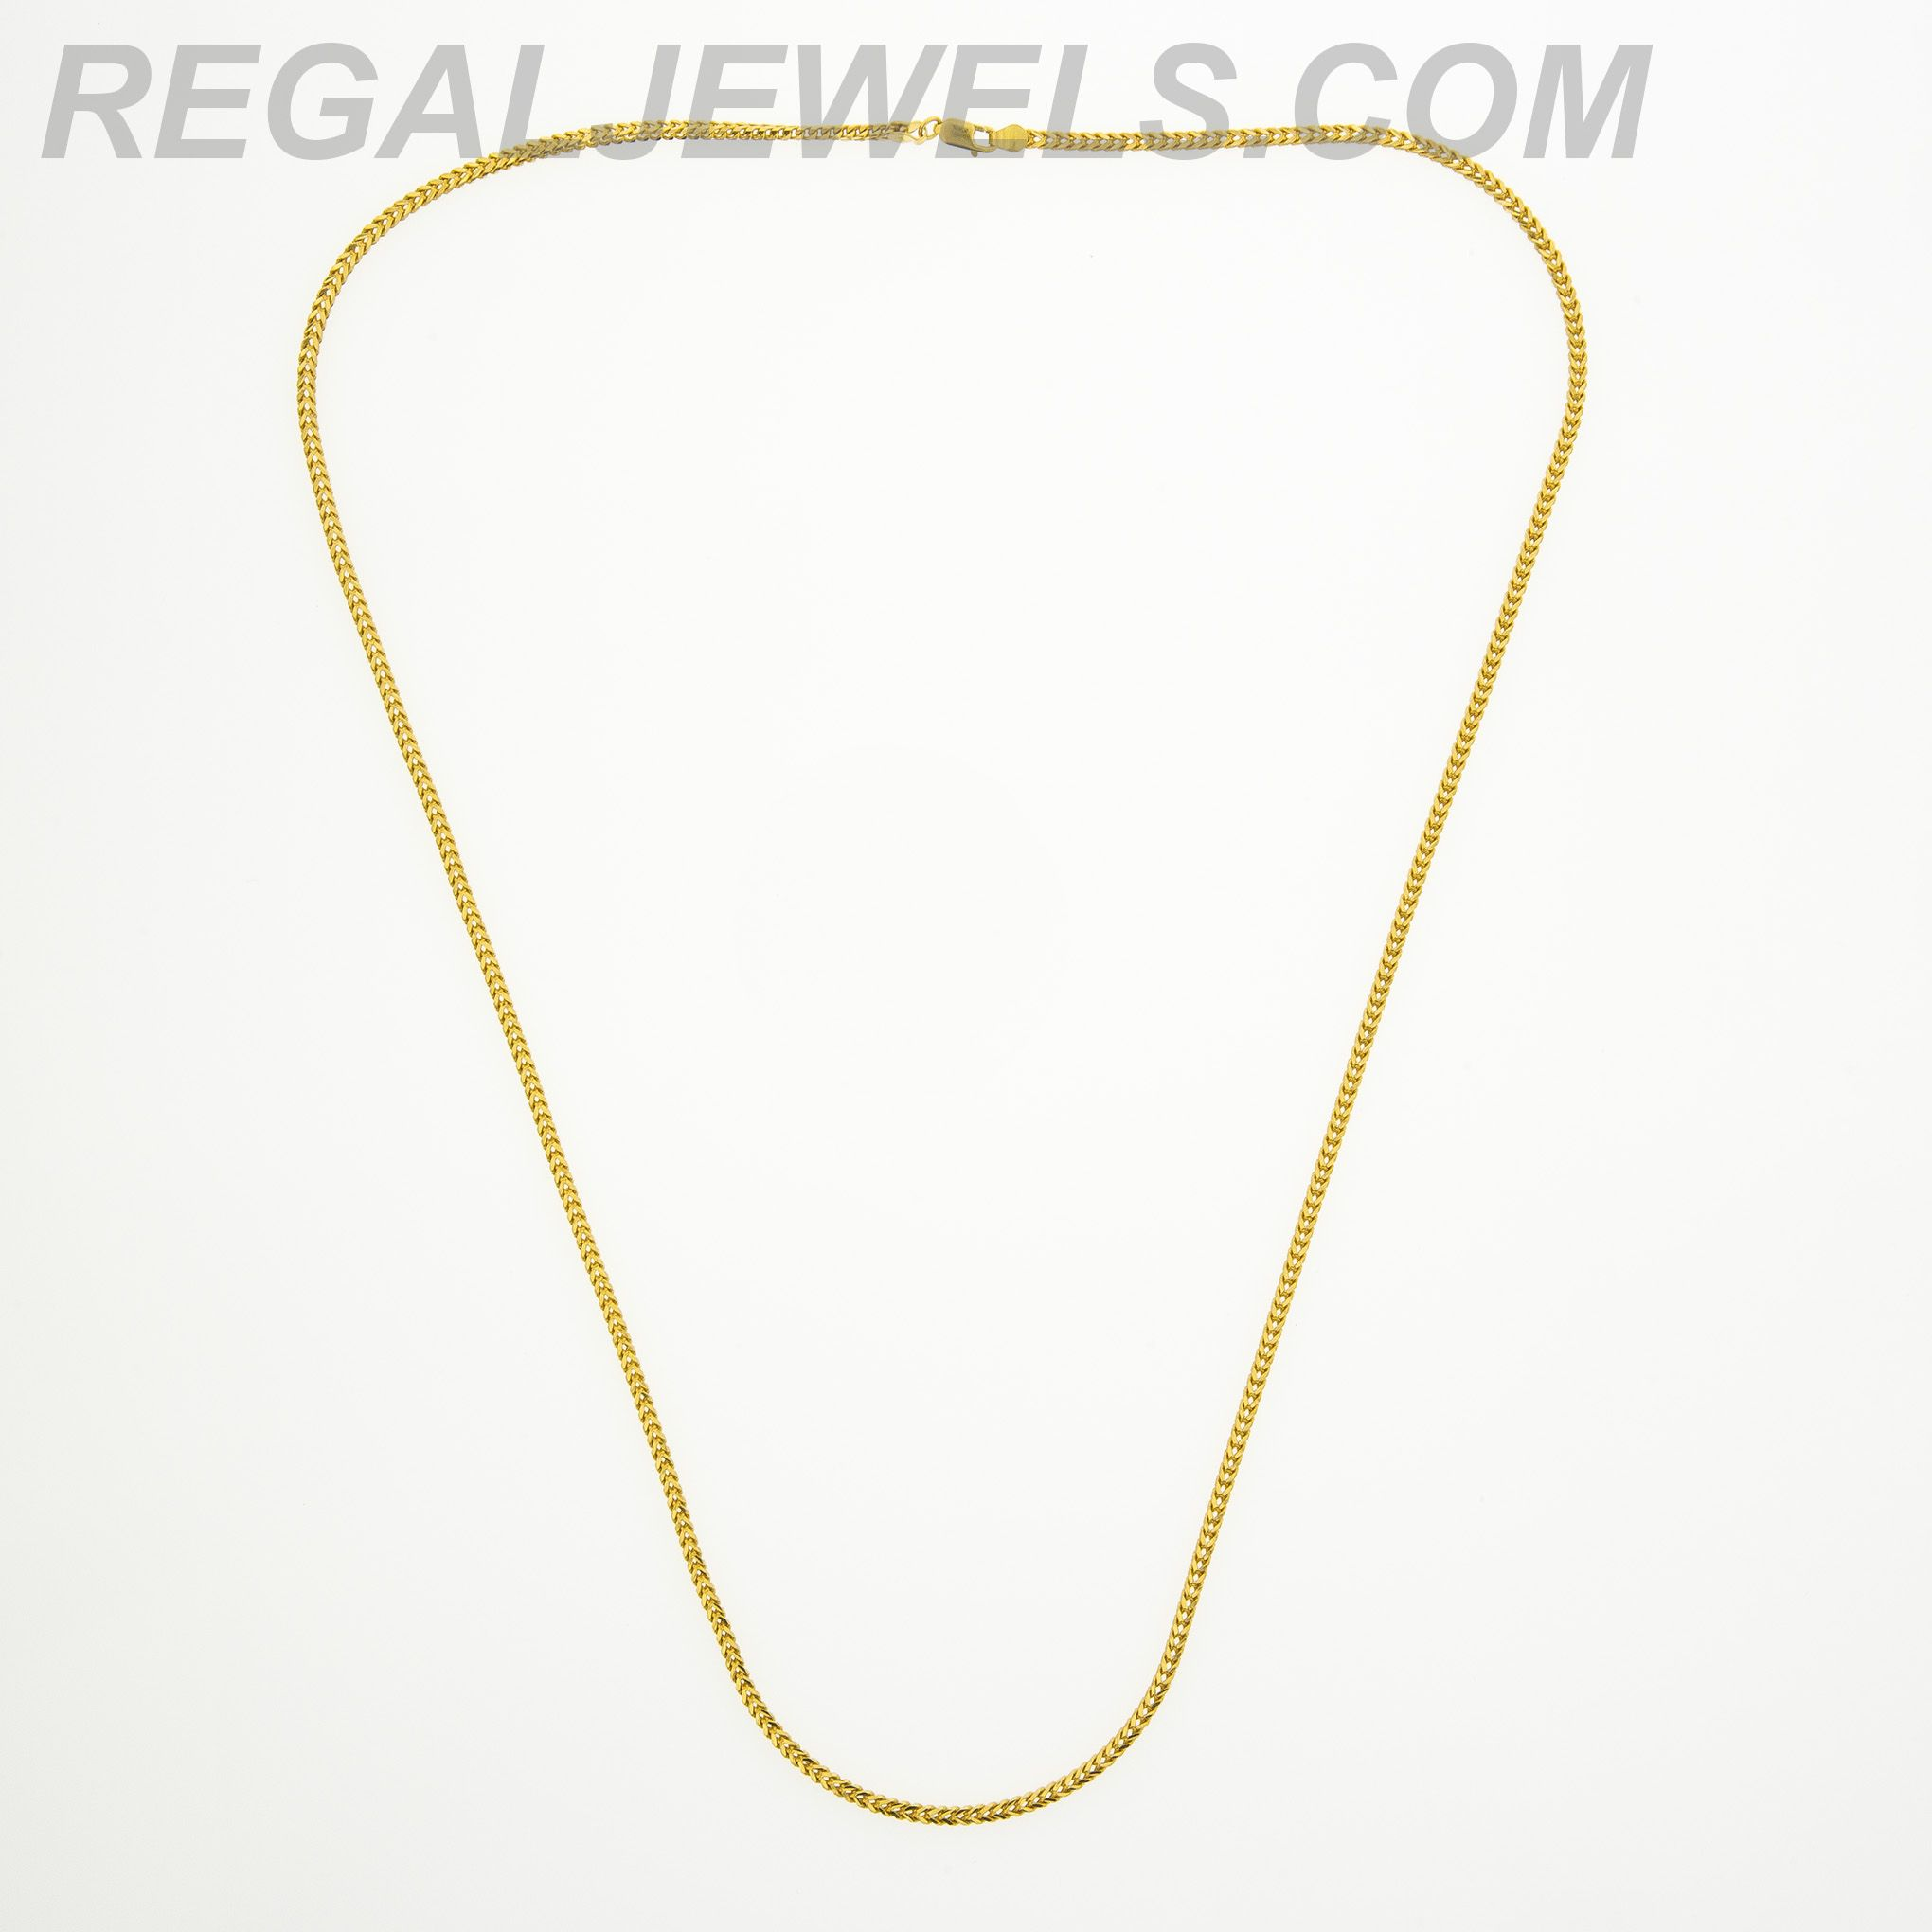 plain mandi amazon india unisex prices and gold plated chains buy b in necklace inch ad online jewar chain plane best at necklaces